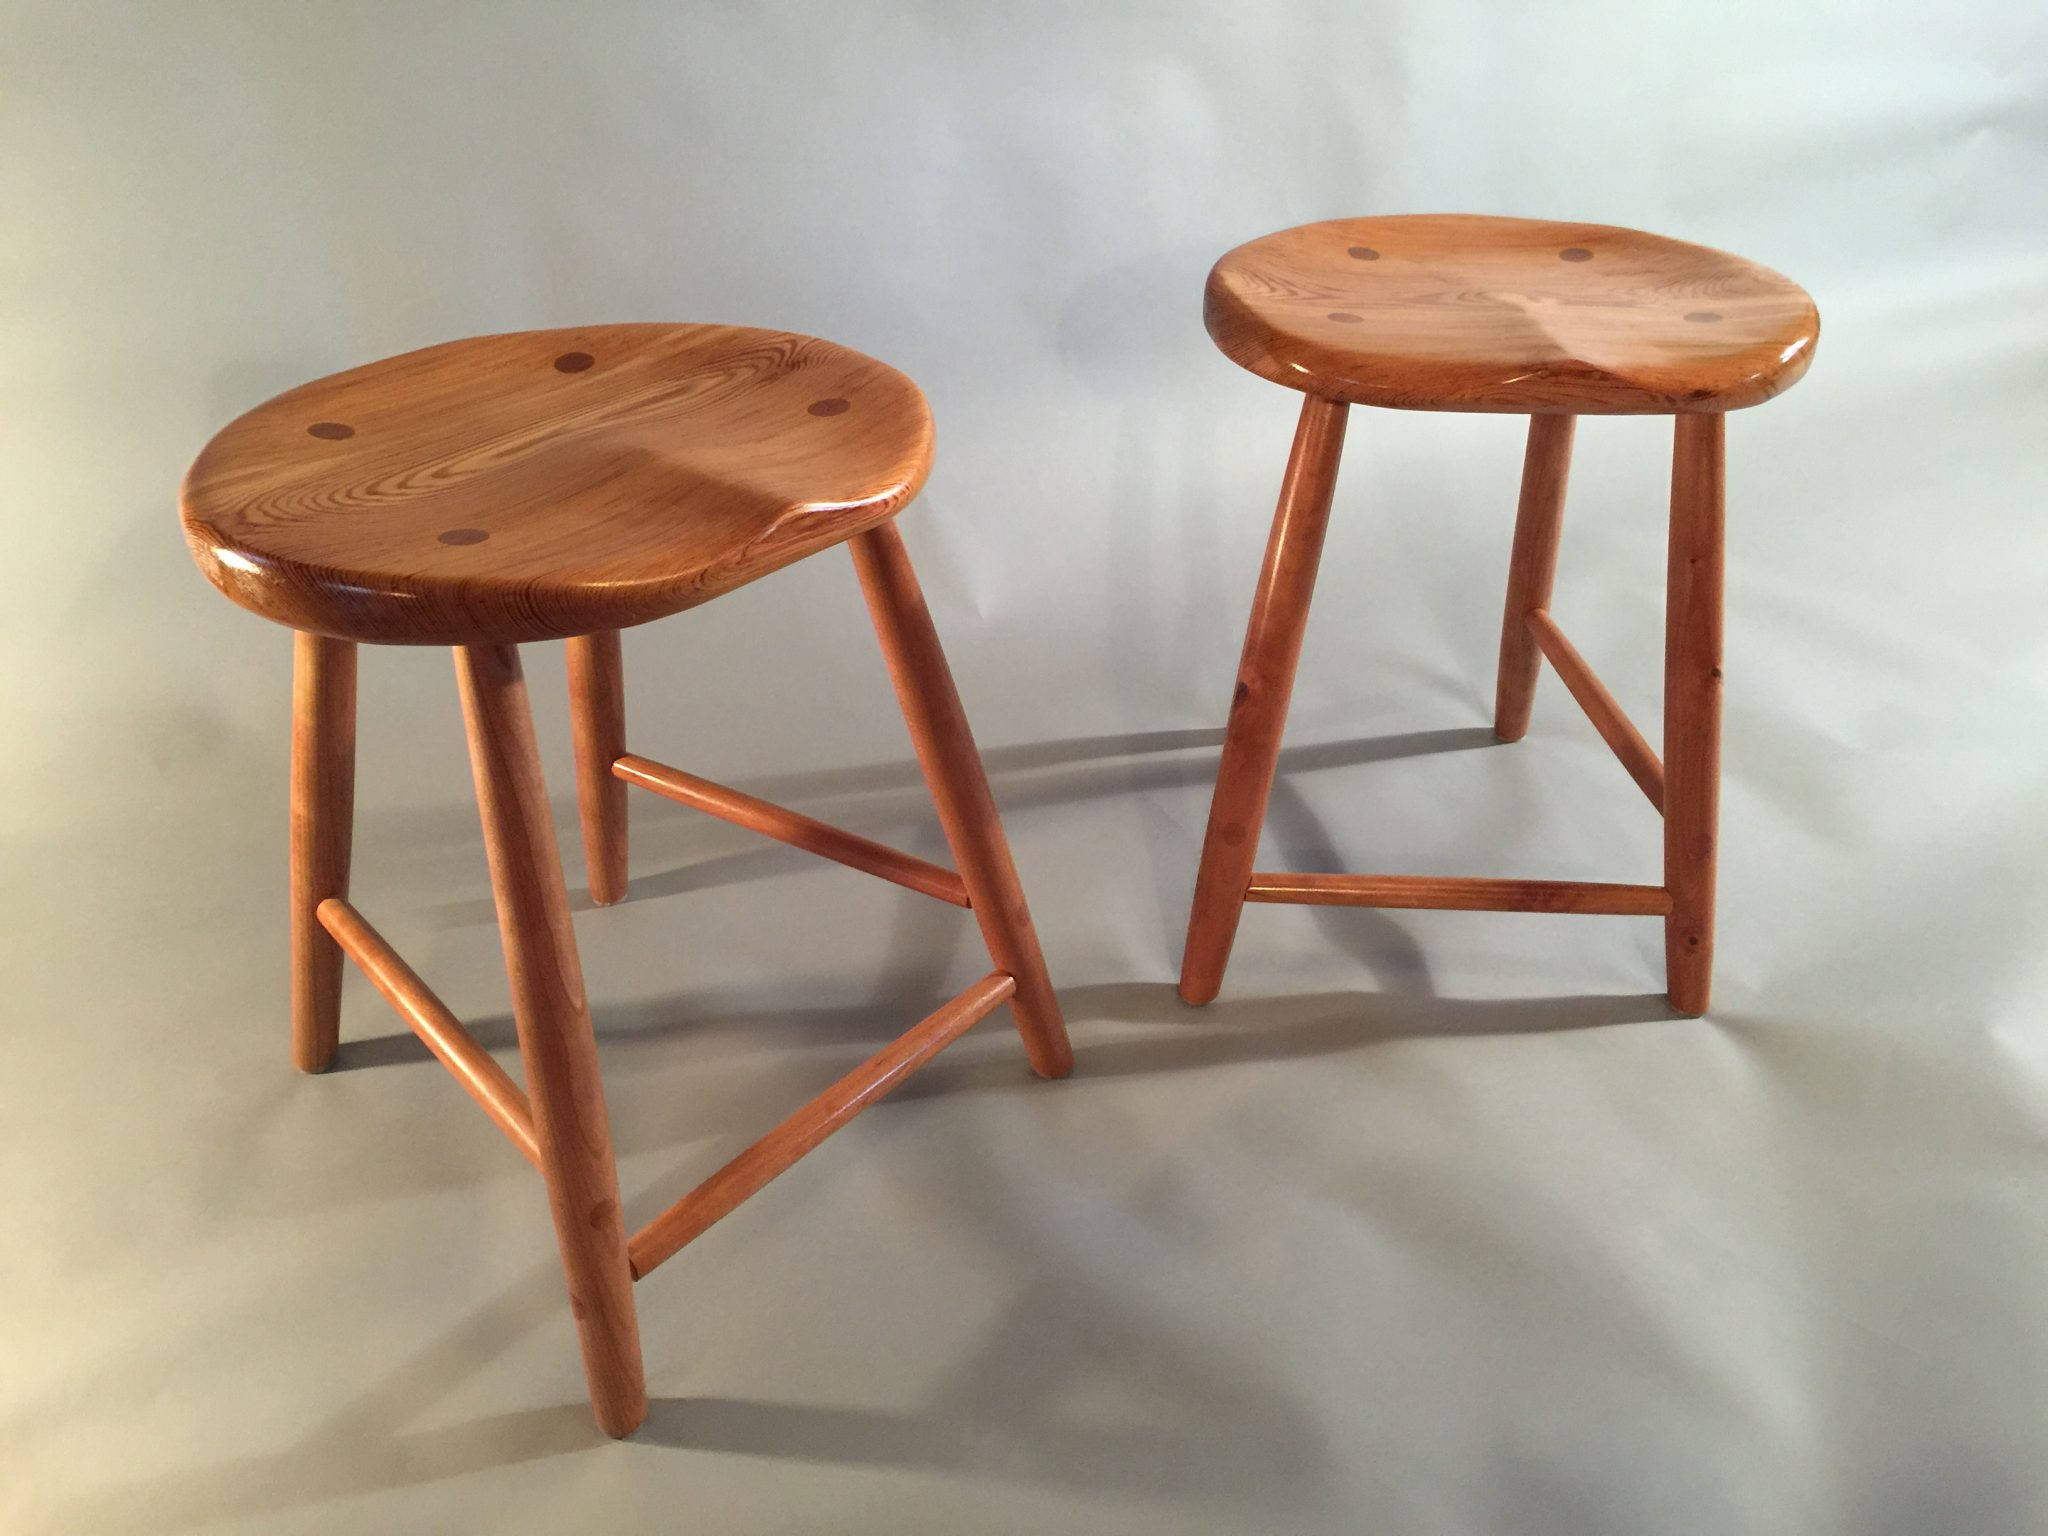 Hand carved yellow heart pine seats with hand turned cherry legs and stretchers